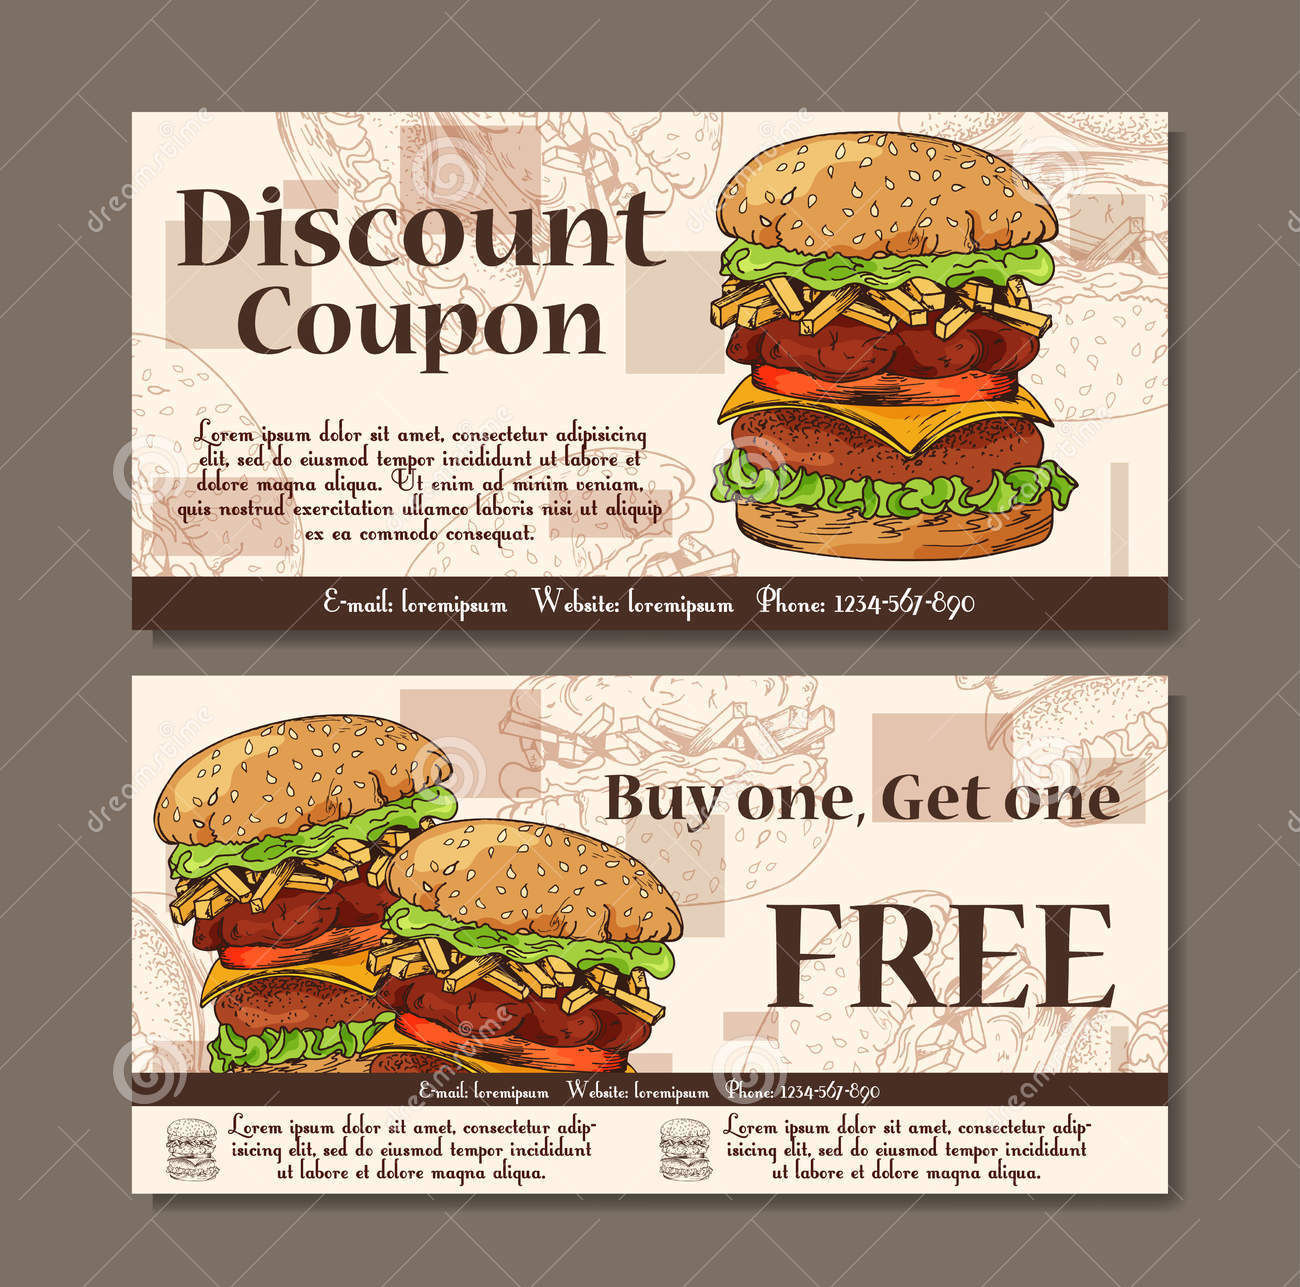 Discount coupons restaurants